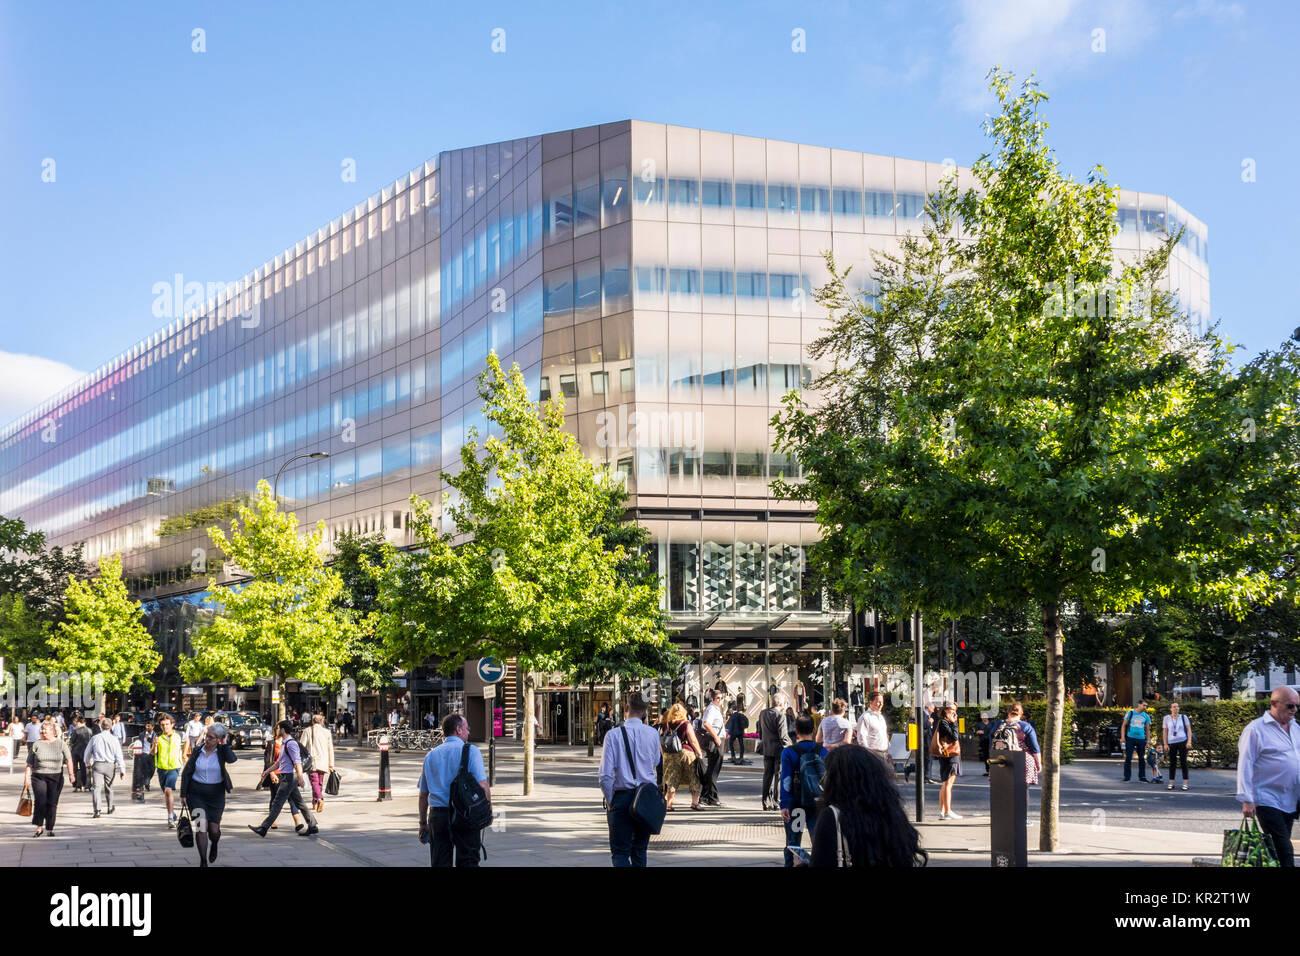 One New Change building by Jean Nouvel viewed from Cheapside, City of London, UK - Stock Image